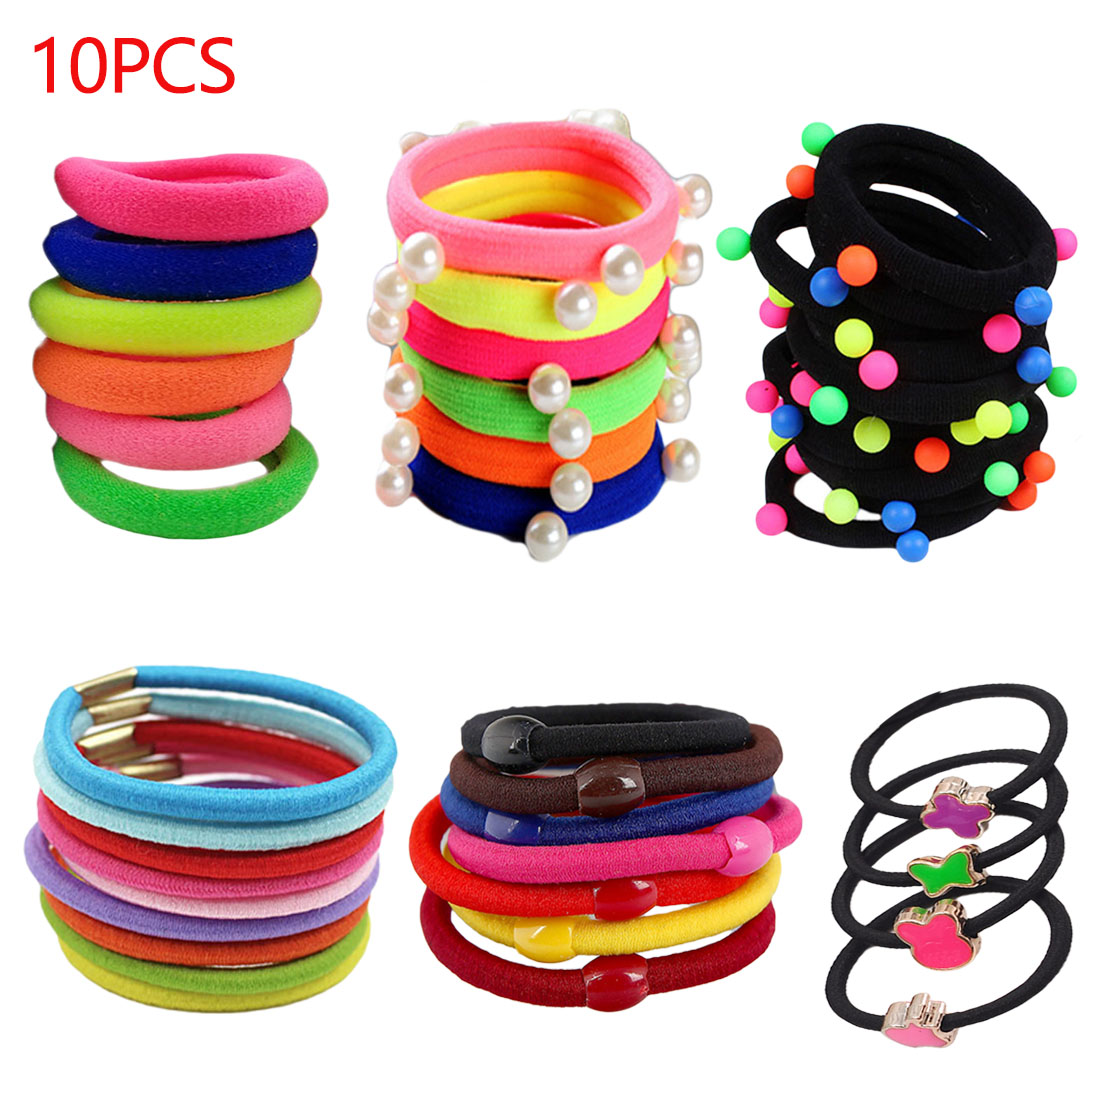 10pcs/lot Women Hair Accessories Elastic Rubberbands Hair Bands Scrunchie Gum Headwear Ponytail Holder Ropes Charms Tie Gum hot sale 2016 top quality brand shoes for men fashion casual shoes teenagers flat walking shoes high top canvas shoes zatapos